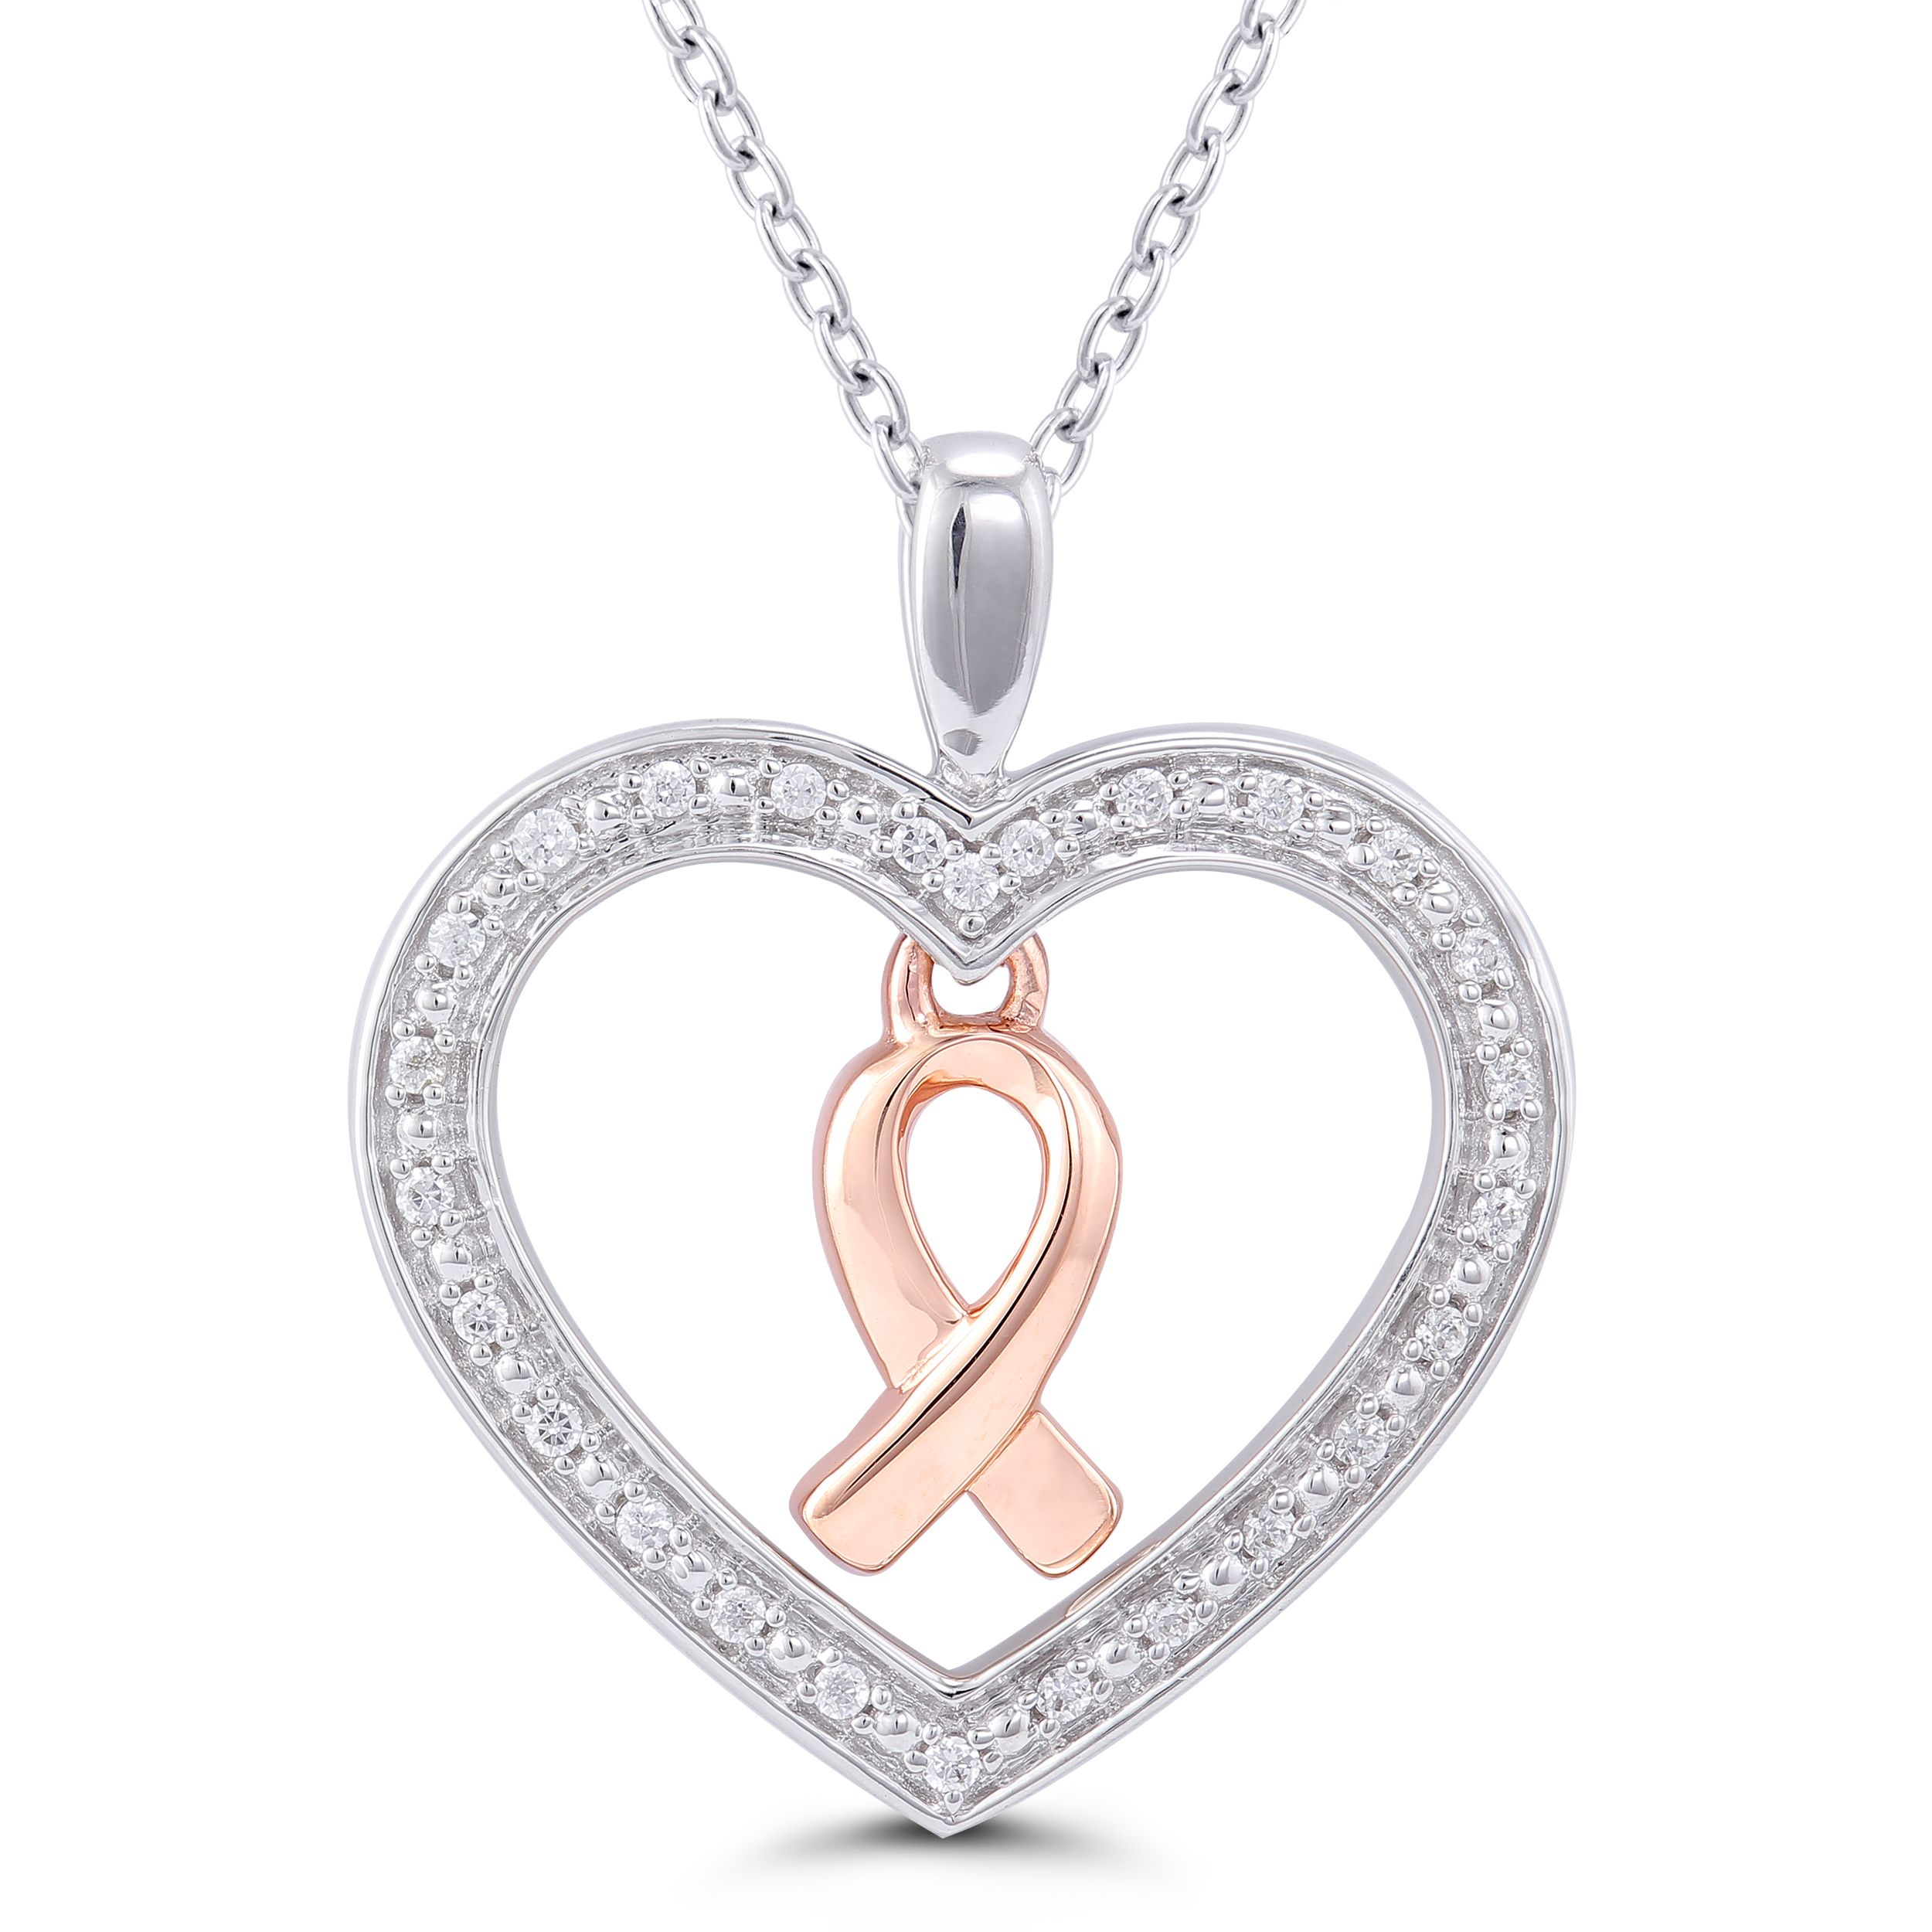 October is National Breast Cancer Month! Stop in and find the perfect piece – as a gift for a survivor, or to show your support!